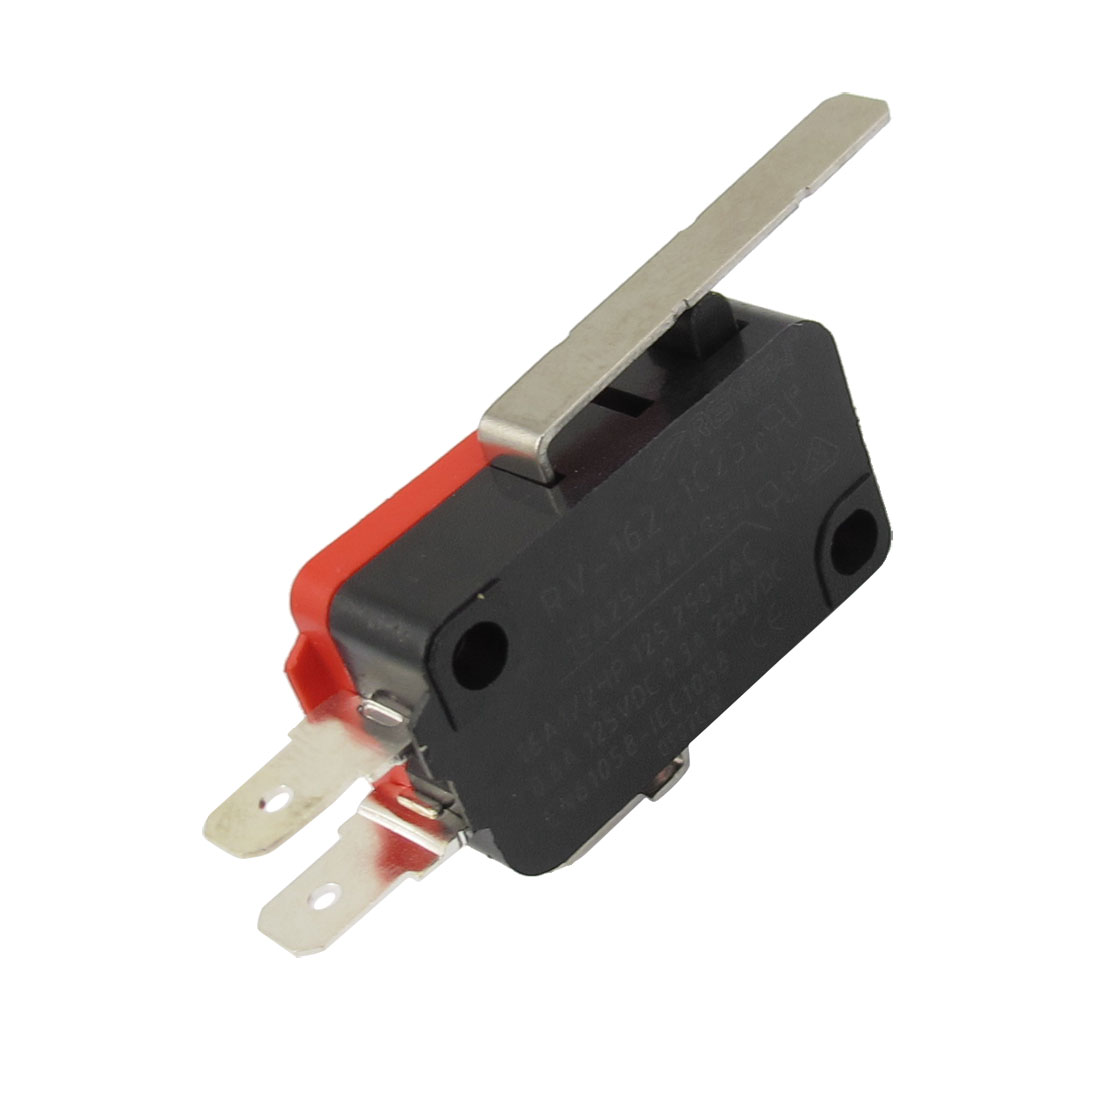 SPDT Long Straight Hinge Lever 3 Pin Momentary Basic Limited Micro Switch